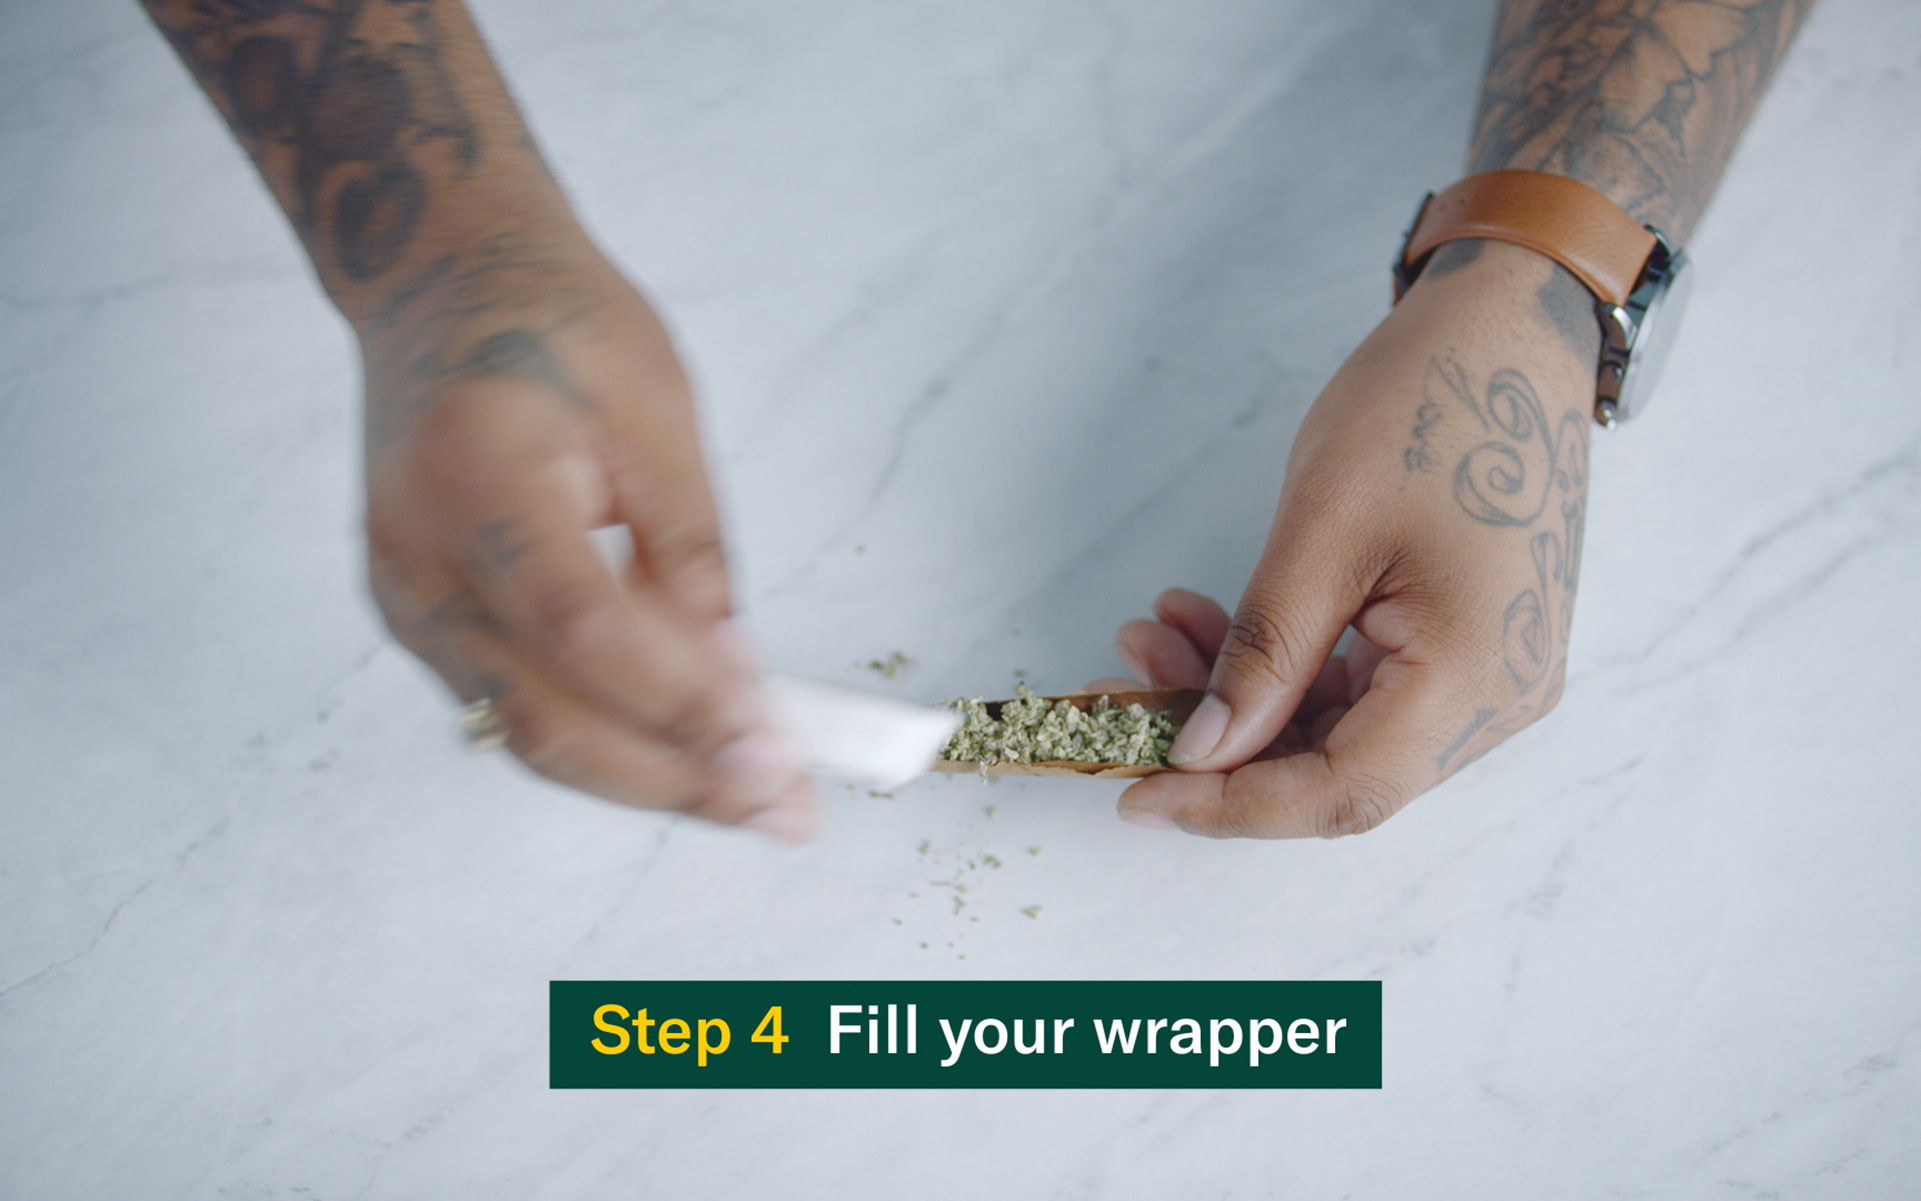 How to make your own blunt wraps